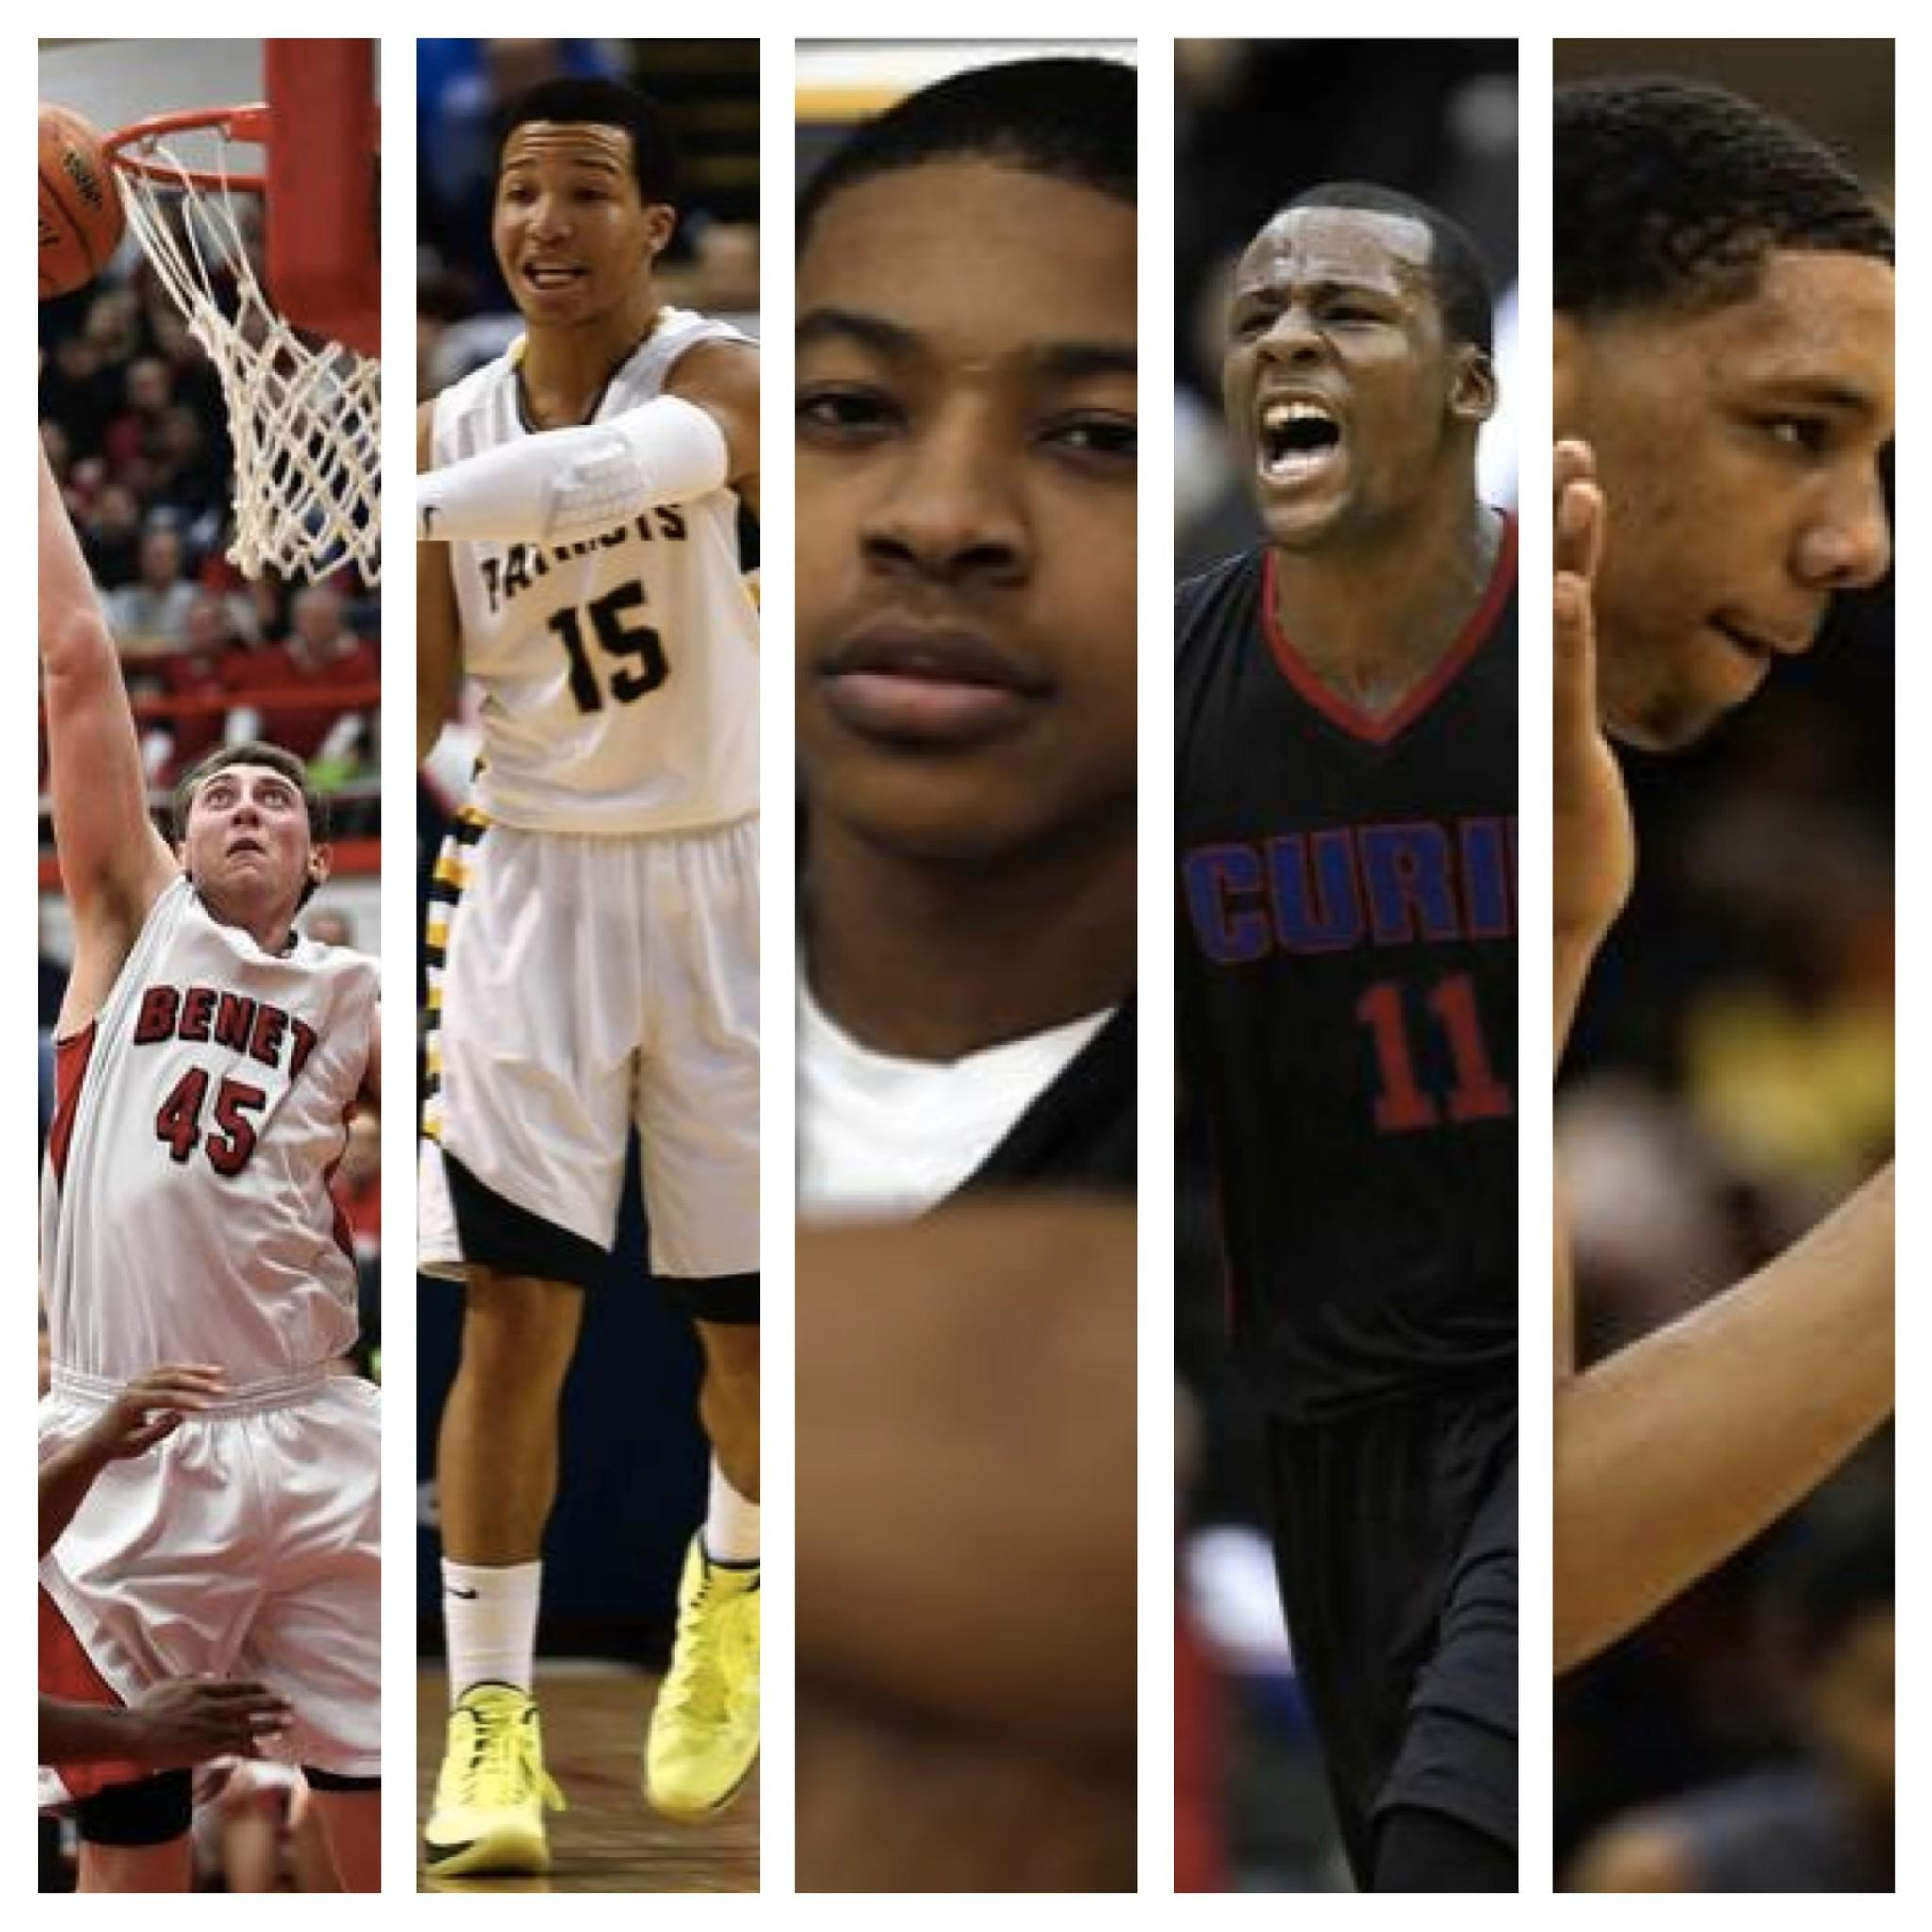 From left: Benet senior Sean O'Mara, Stevenson junior Jalen Brunson, Marian Catholic senior Tyler Ulis, Curie senior Cliff Alexander, Young senior Jahlil Okafor